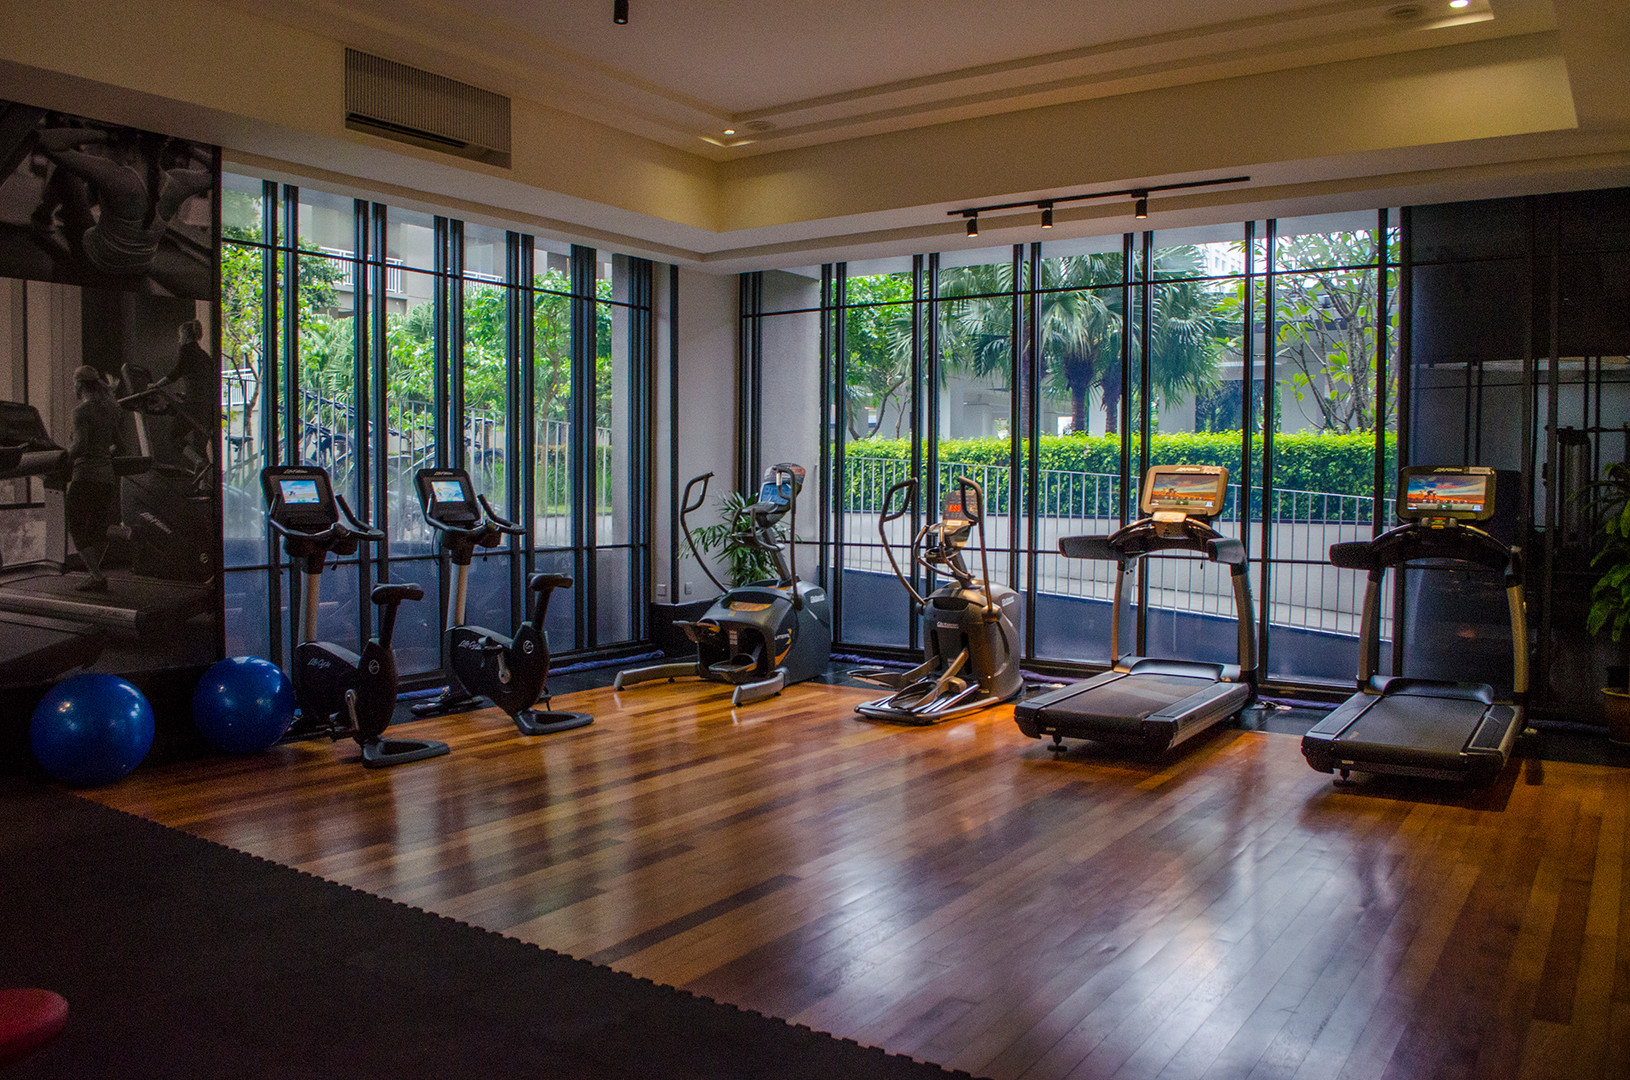 private gym room only for 18 East residents